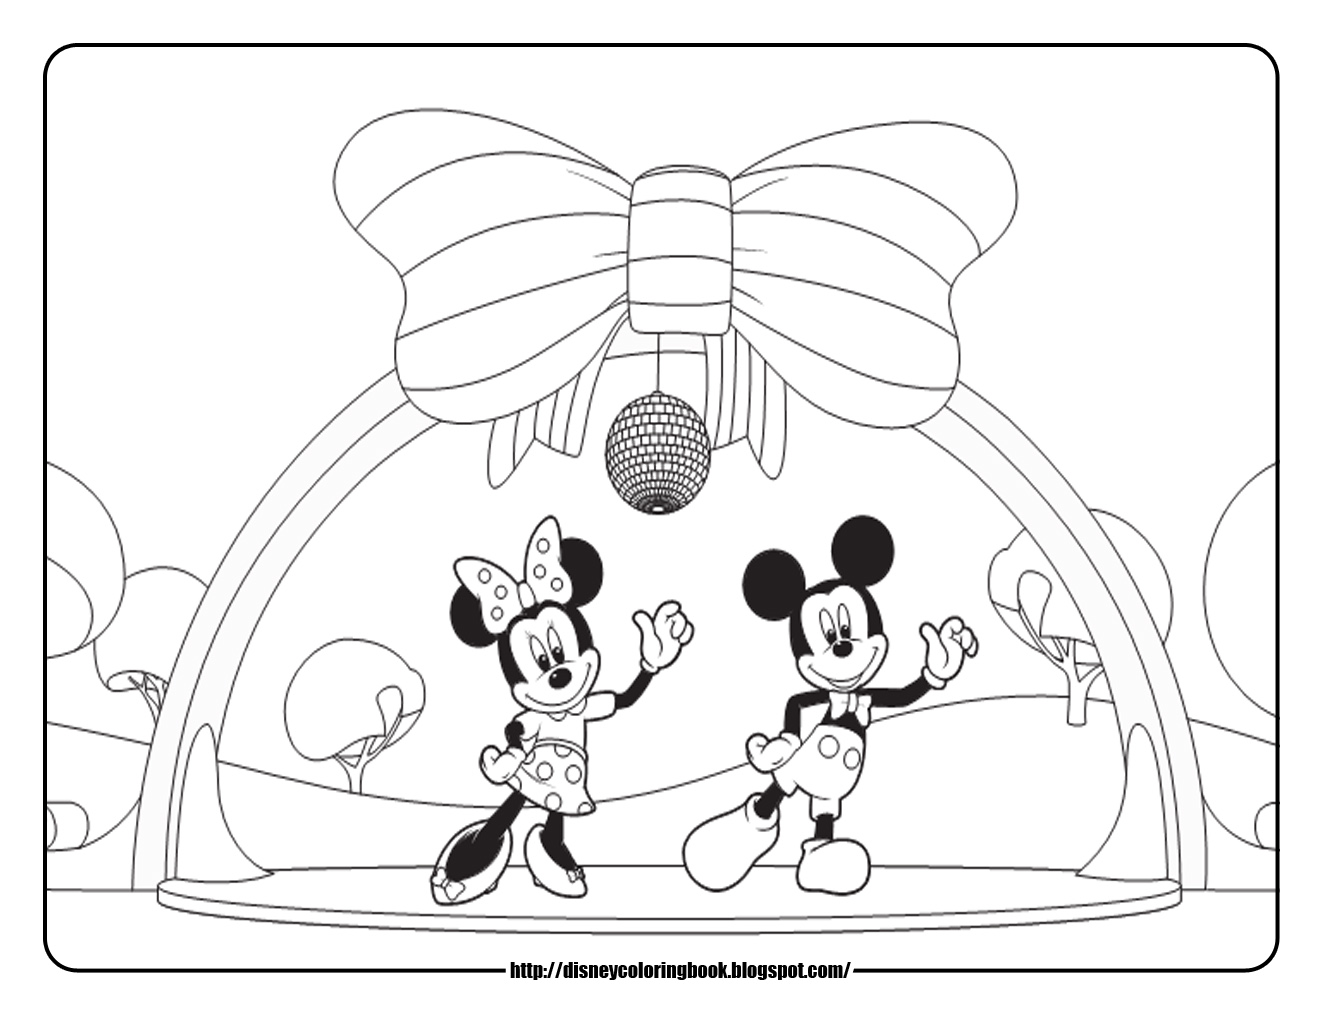 Disney Coloring Pages And Sheets For Kids Mickey Mouse